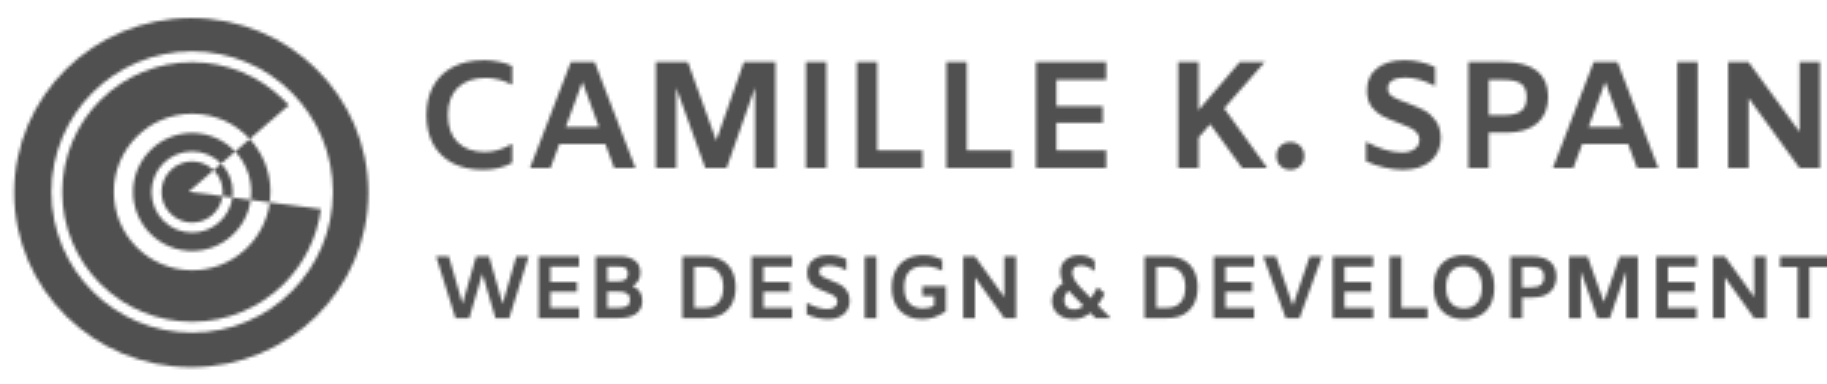 Camille K. Spain Web Design & Development